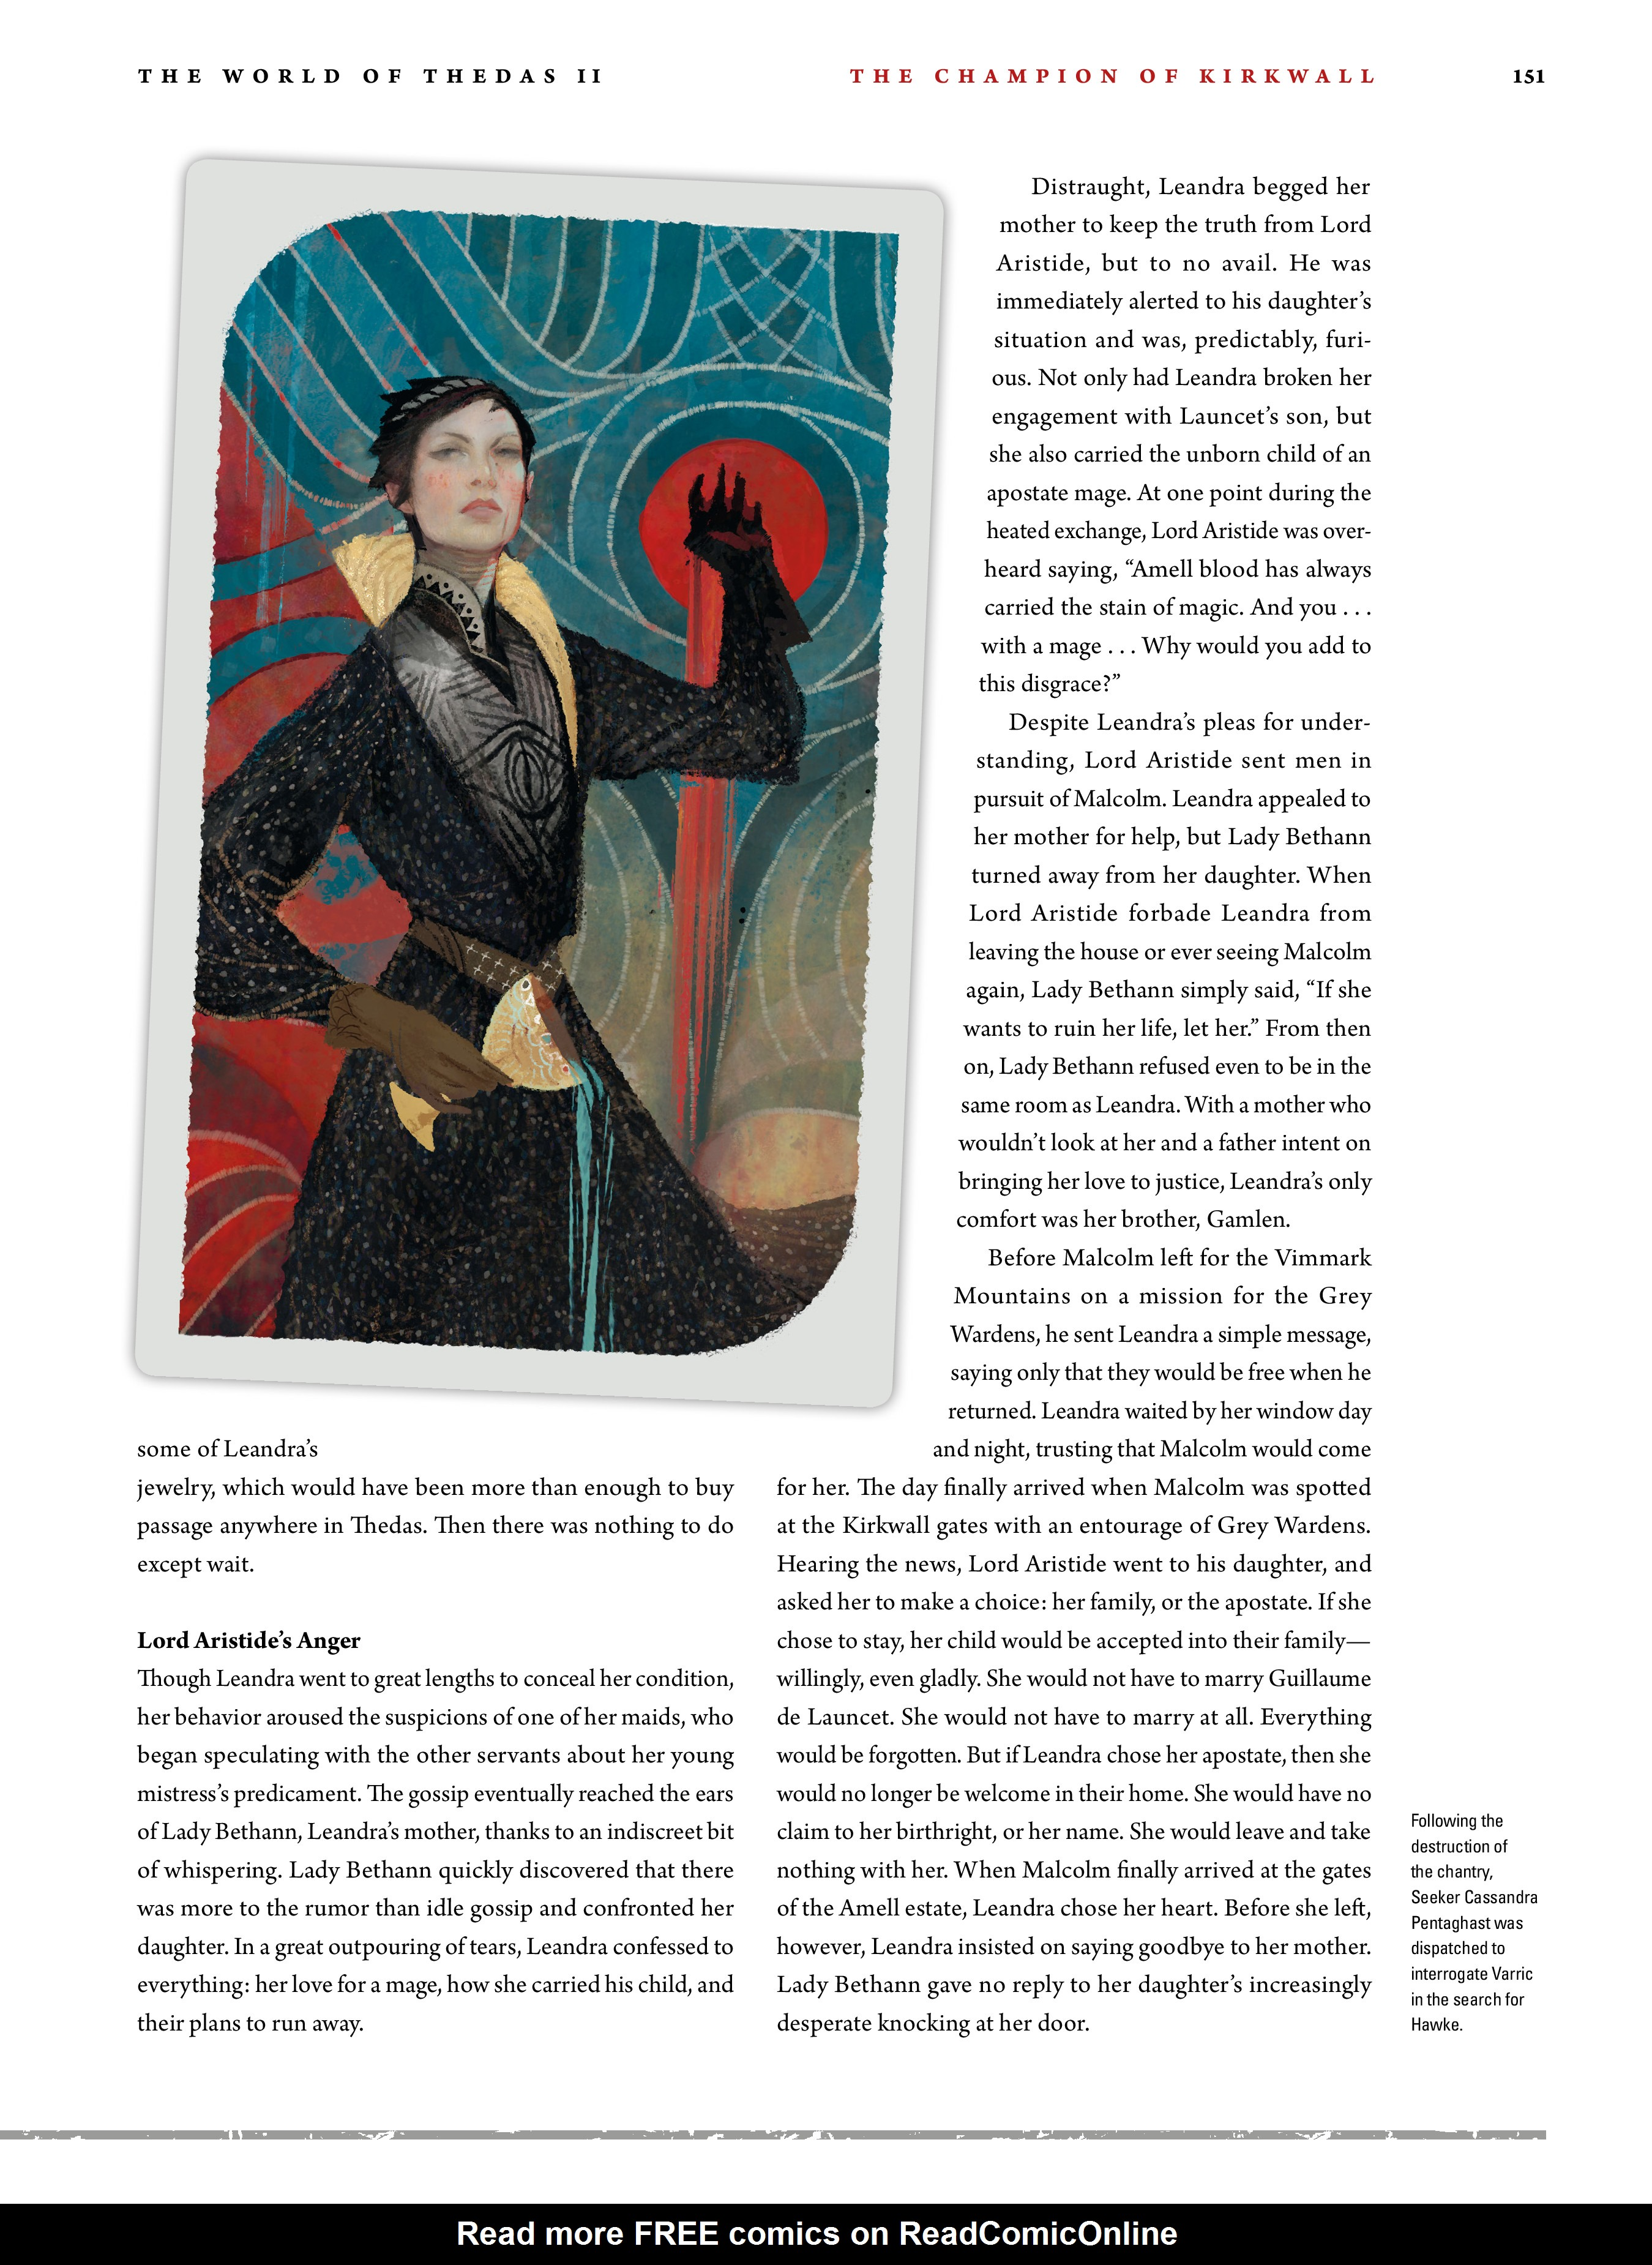 Read online Dragon Age: The World of Thedas comic -  Issue # TPB 2 - 147